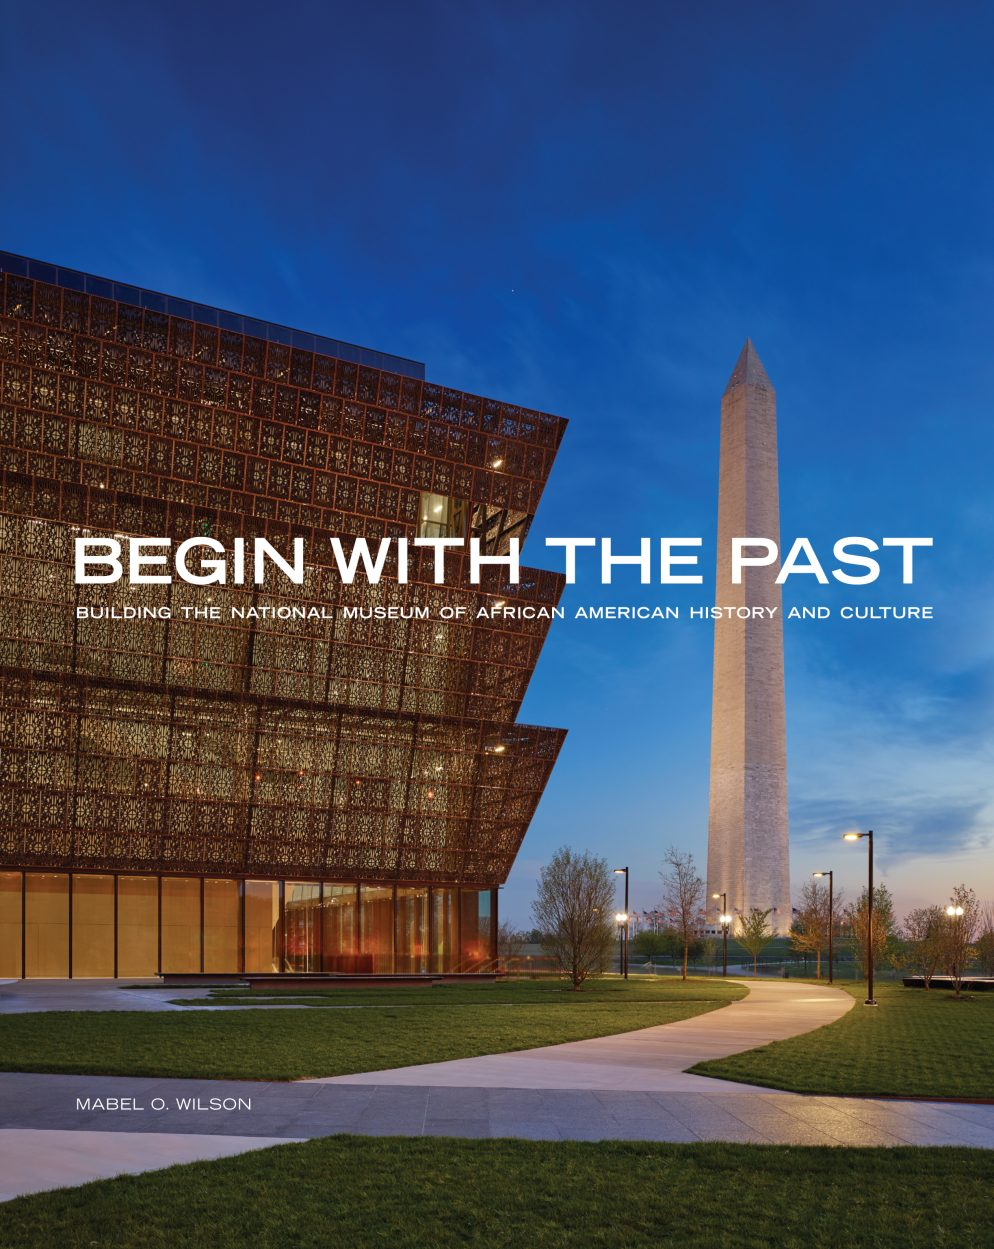 How One Writer Told the Story of the New African American History Museum